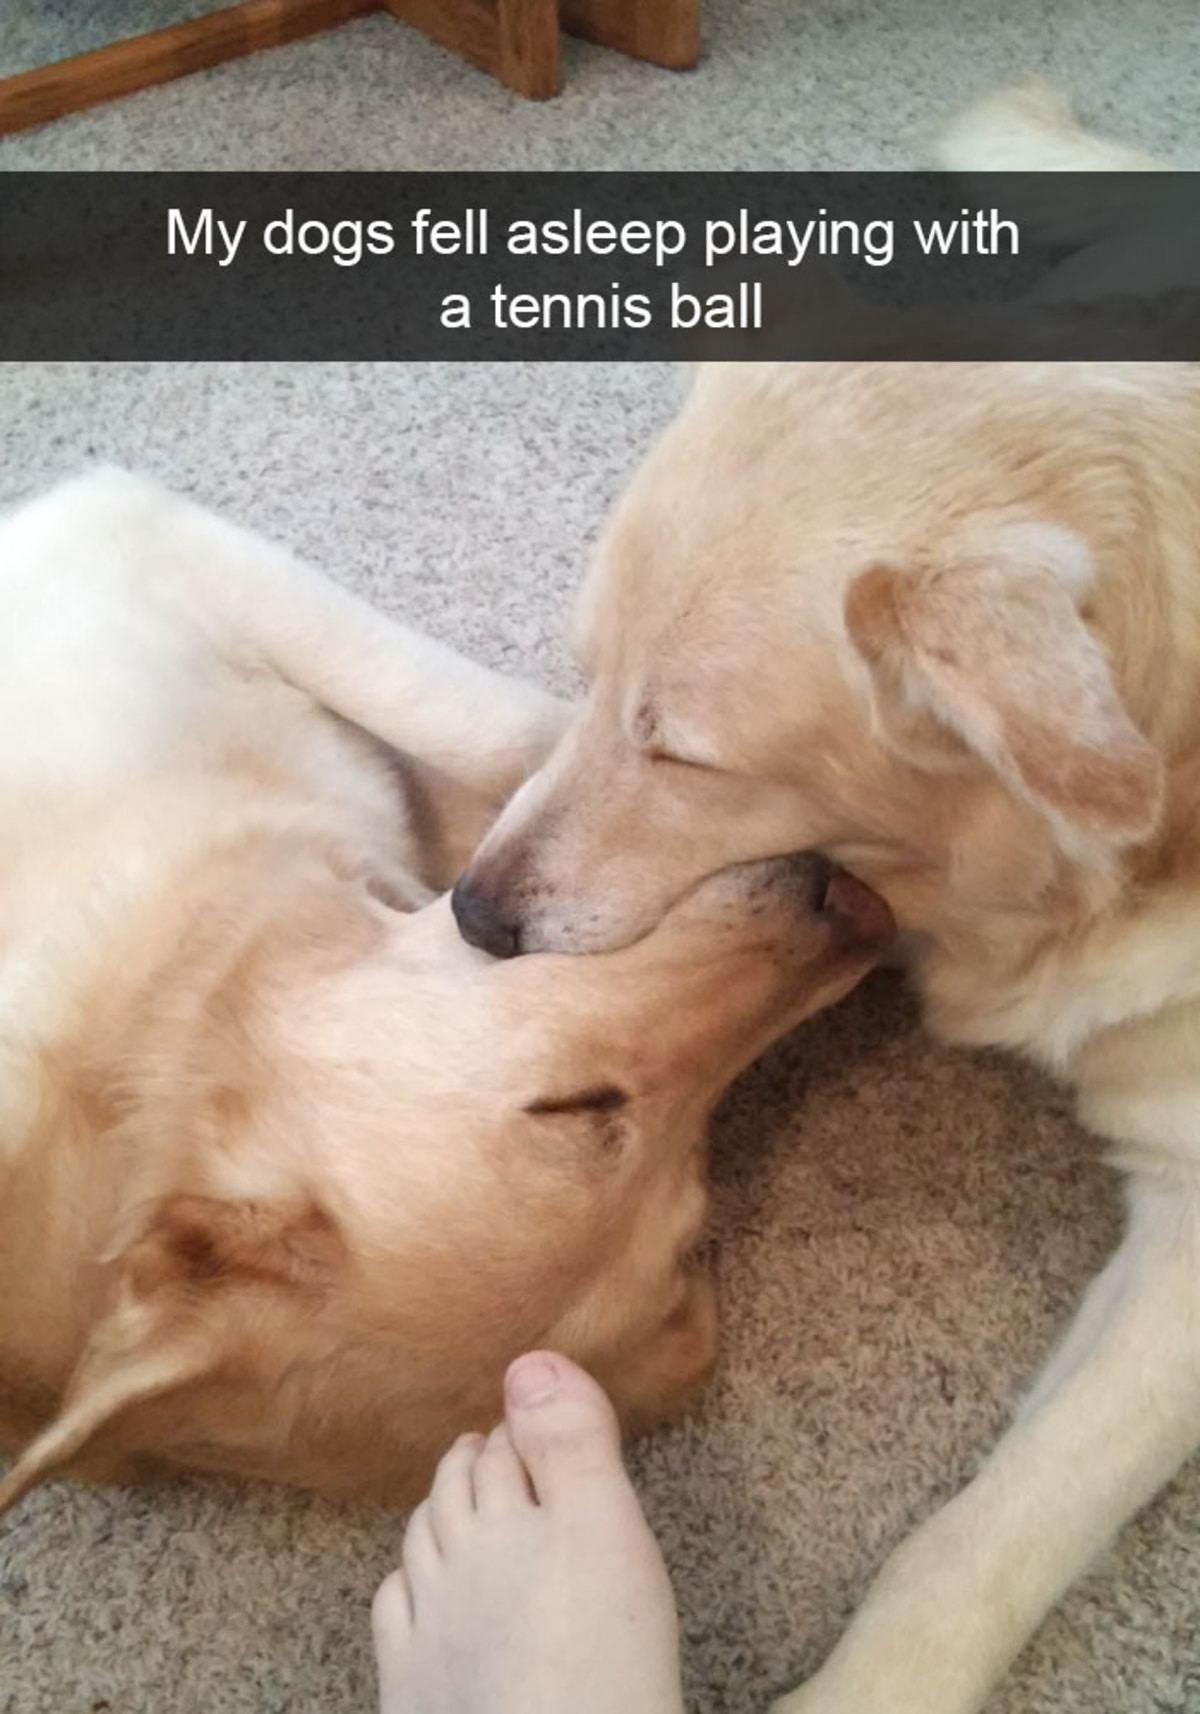 Hilarious Dog Snapchats. join list: CuteDogs (234 subs)Mention Clicks: 4485Msgs Sent: 28713Mention History. My dogs fell asleep playing with a tennis ballEvery